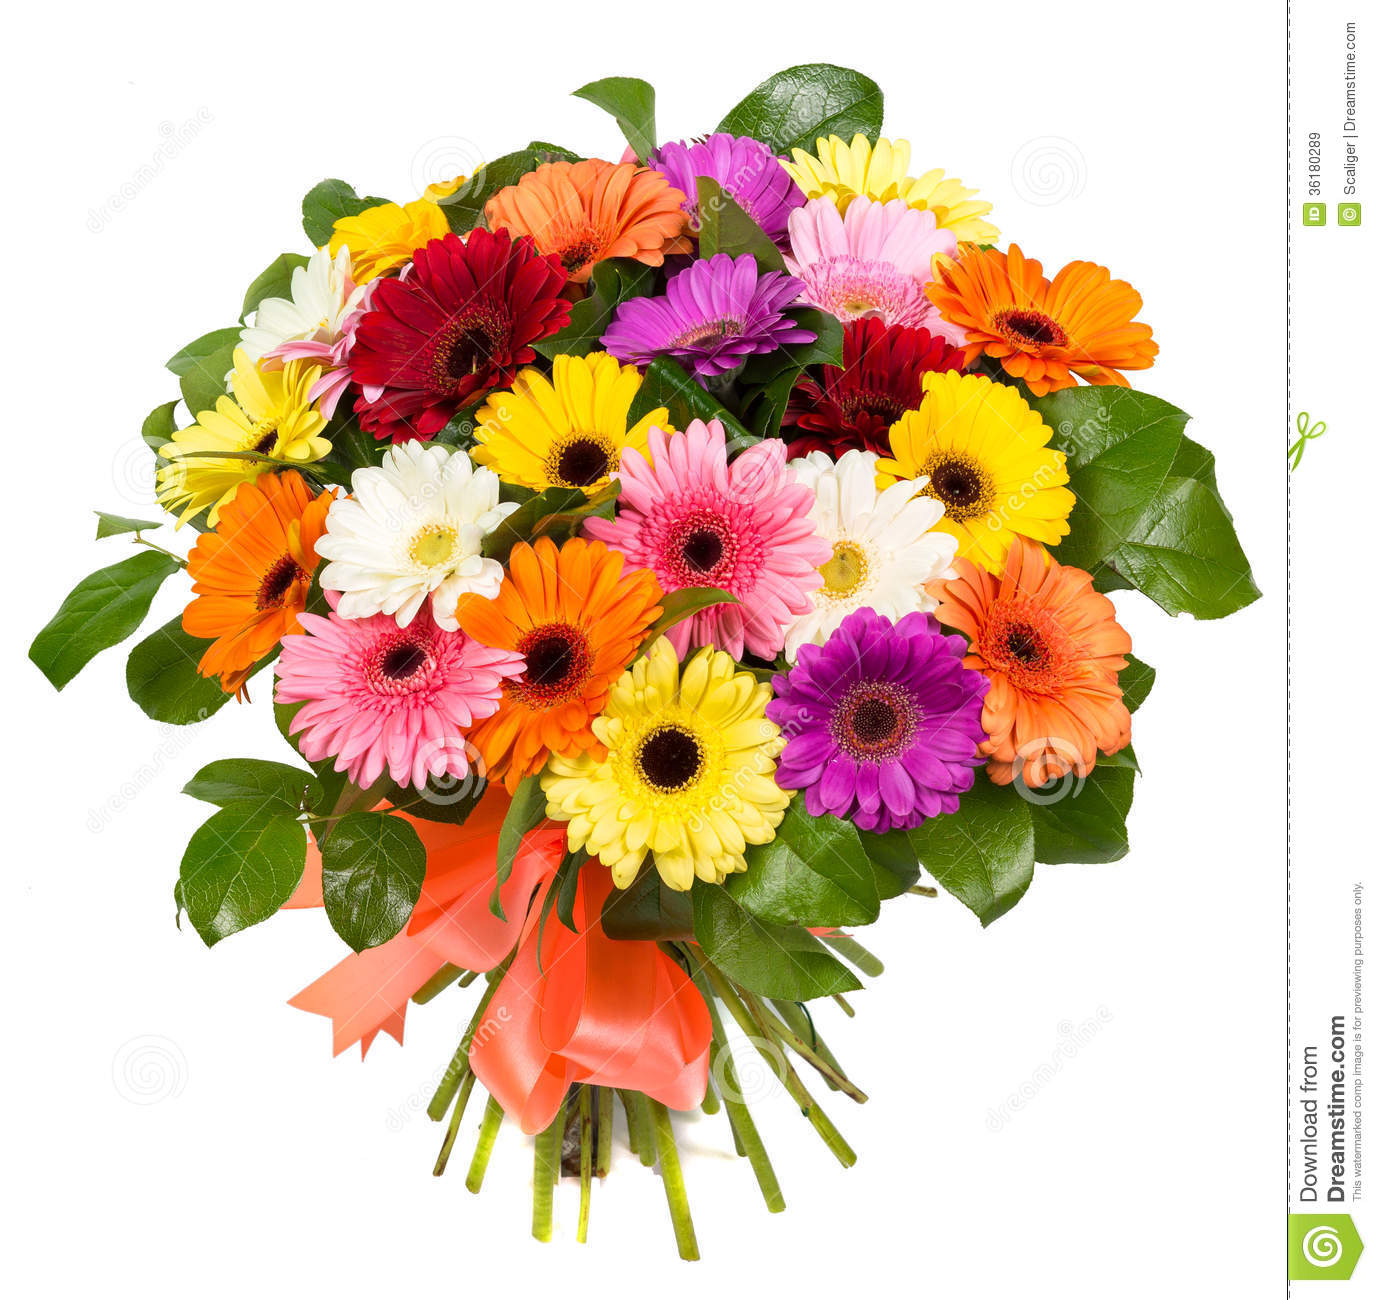 Bouquet of colorful gerberas stock image image of for Bouquet de fleurs gerbera